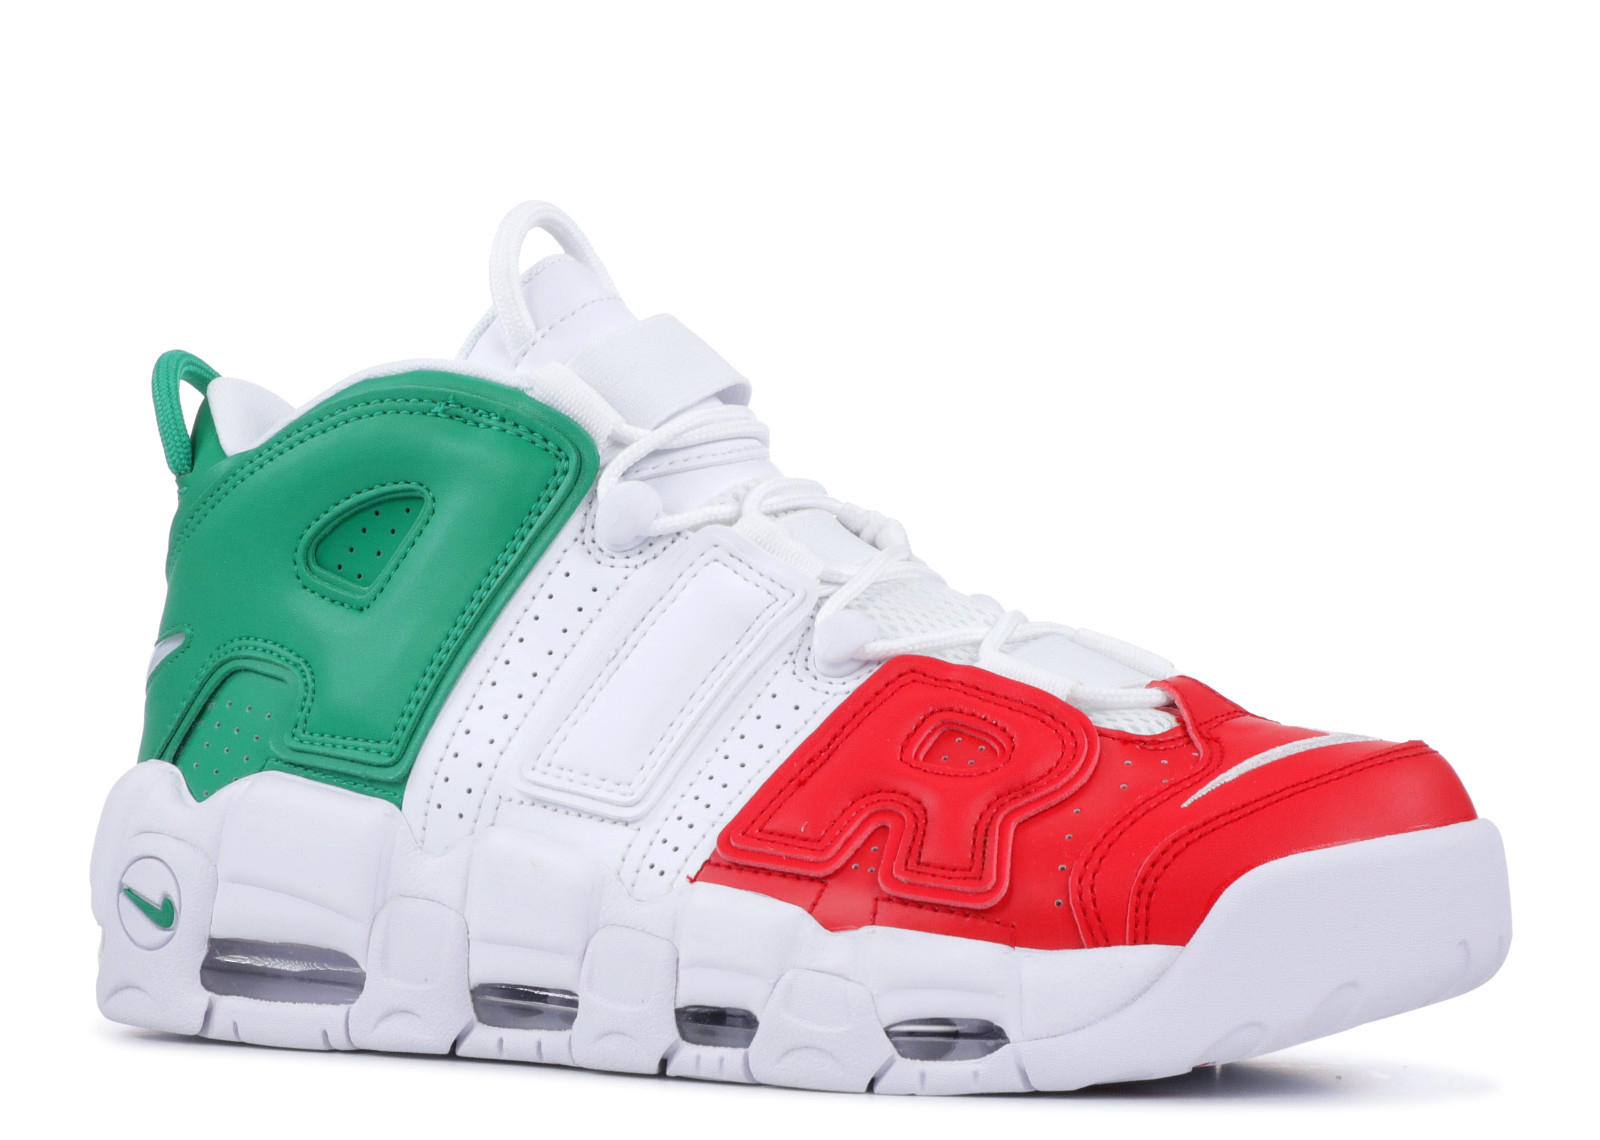 the latest 684db 415d3 Nike Air More Uptempo 96 Italy - 1